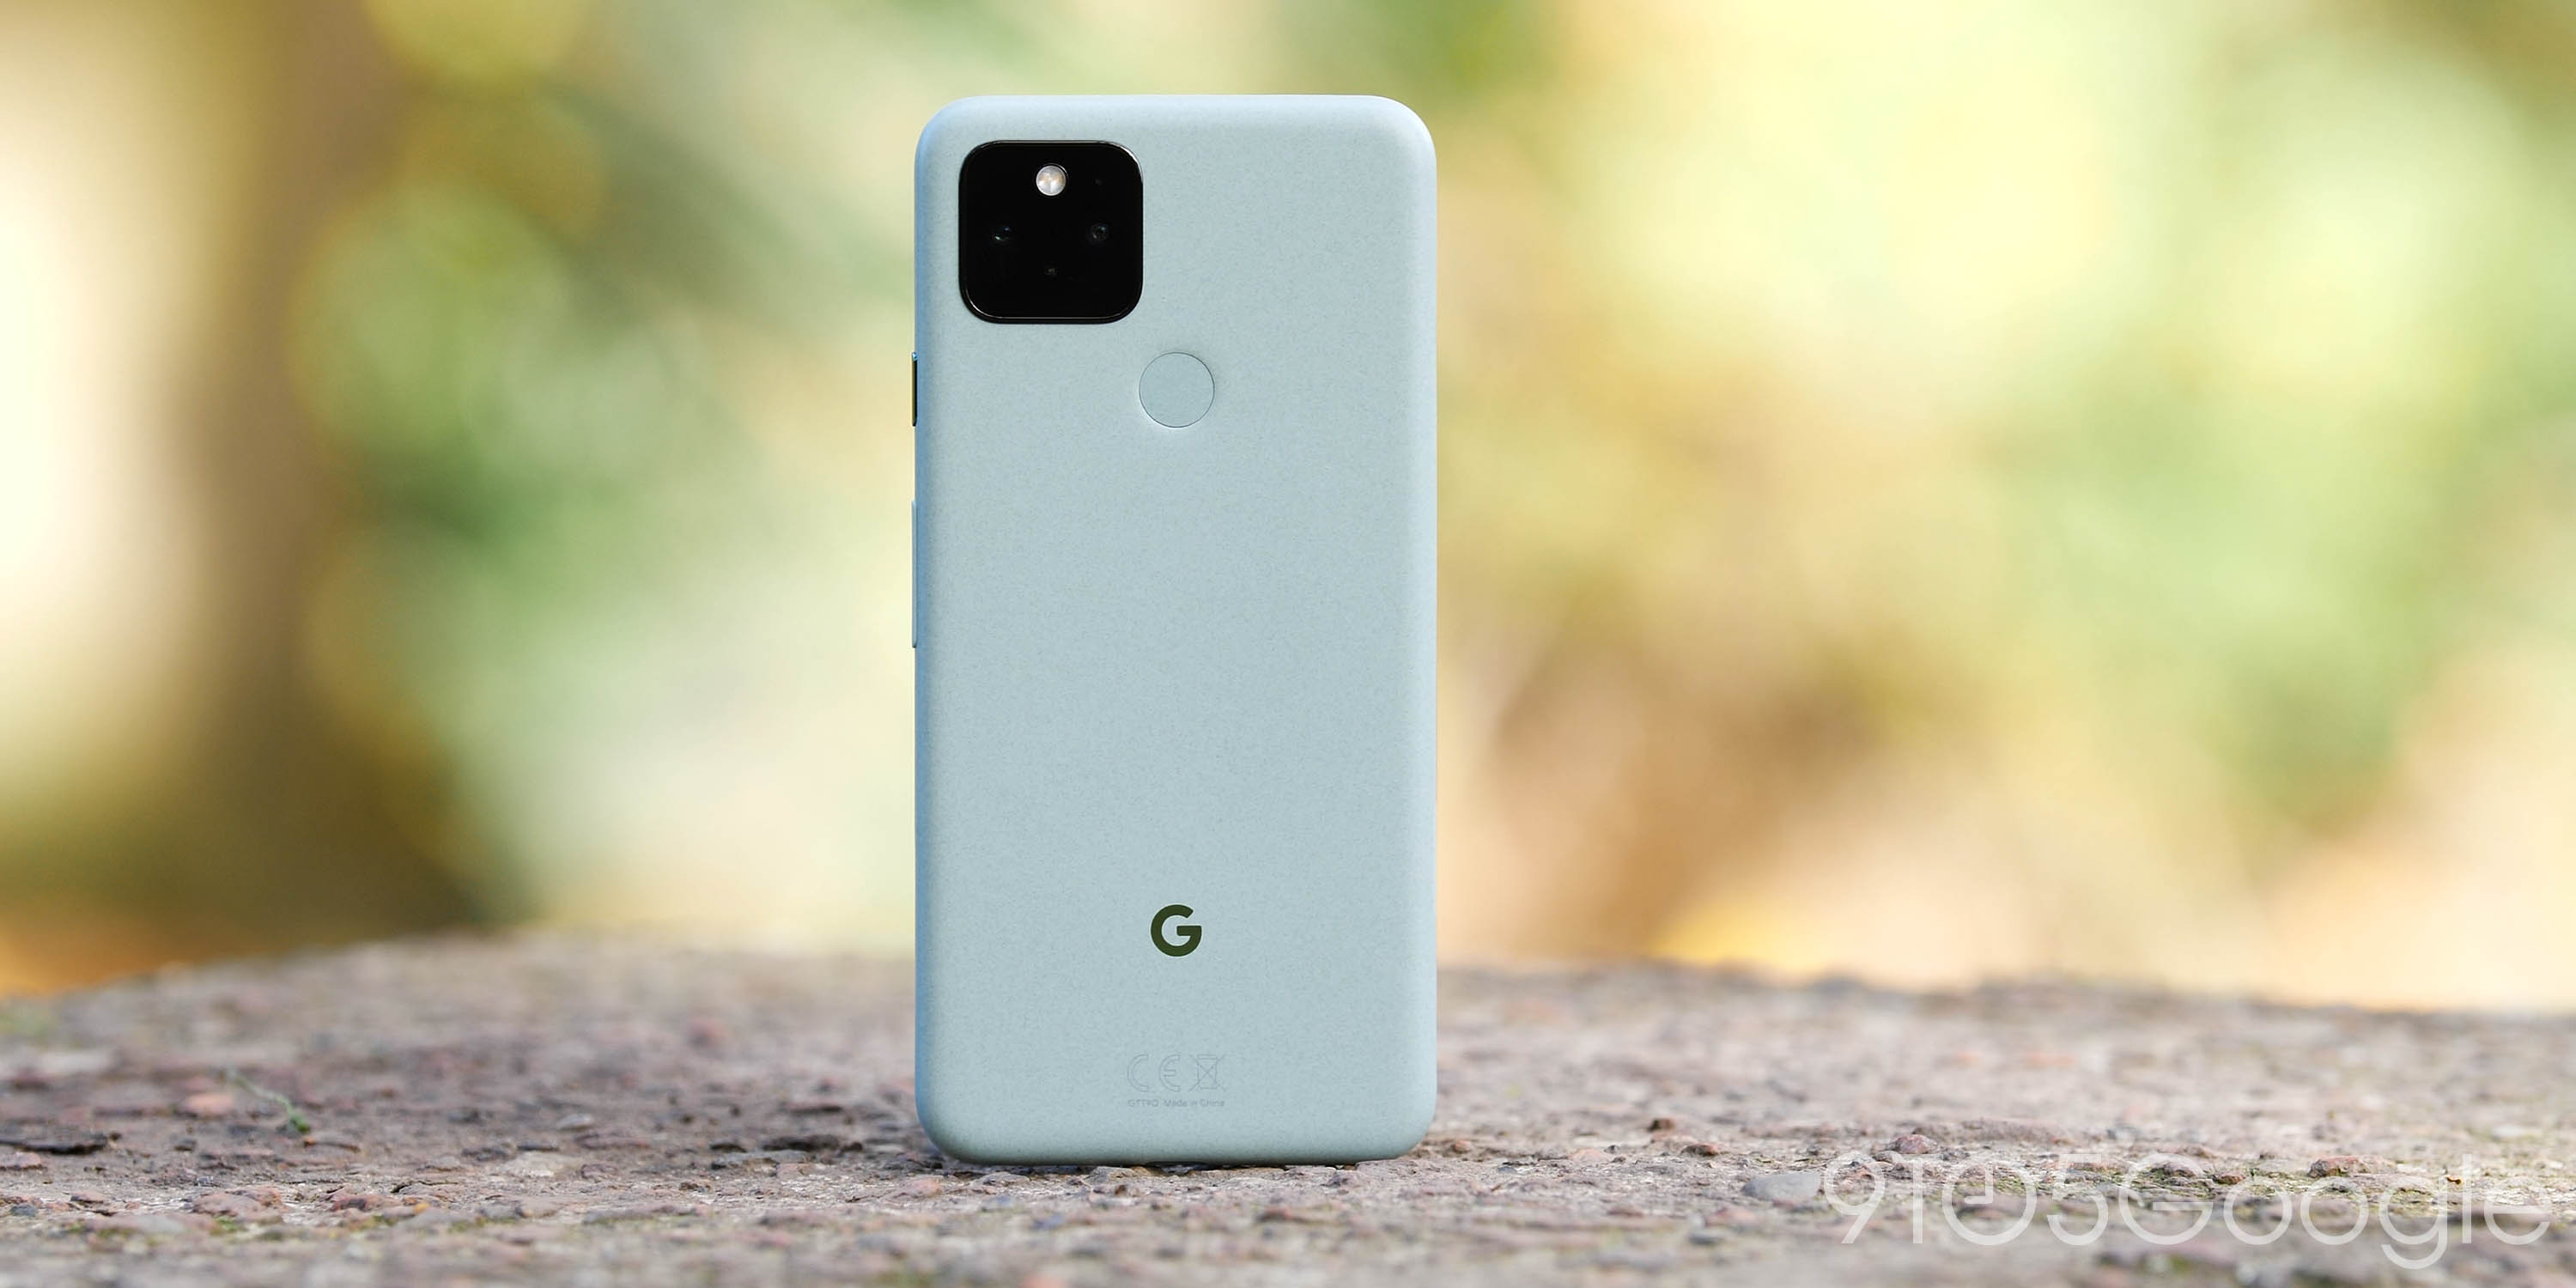 Google Pixel 5: Top 10 new features [Video] - 9to5Google